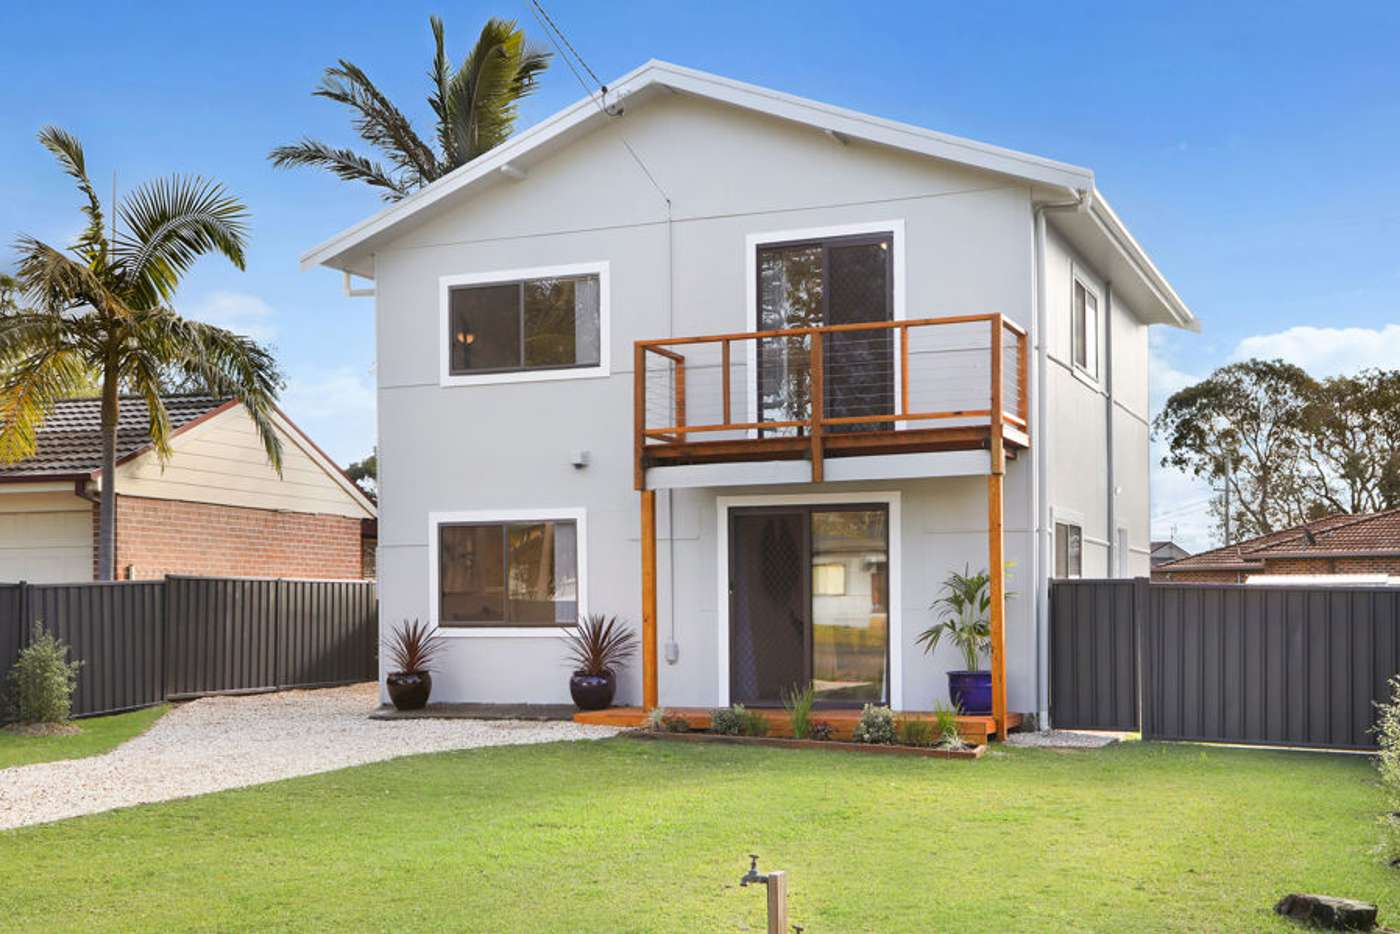 Main view of Homely house listing, 97 Cams Boulevard, Summerland Point NSW 2259